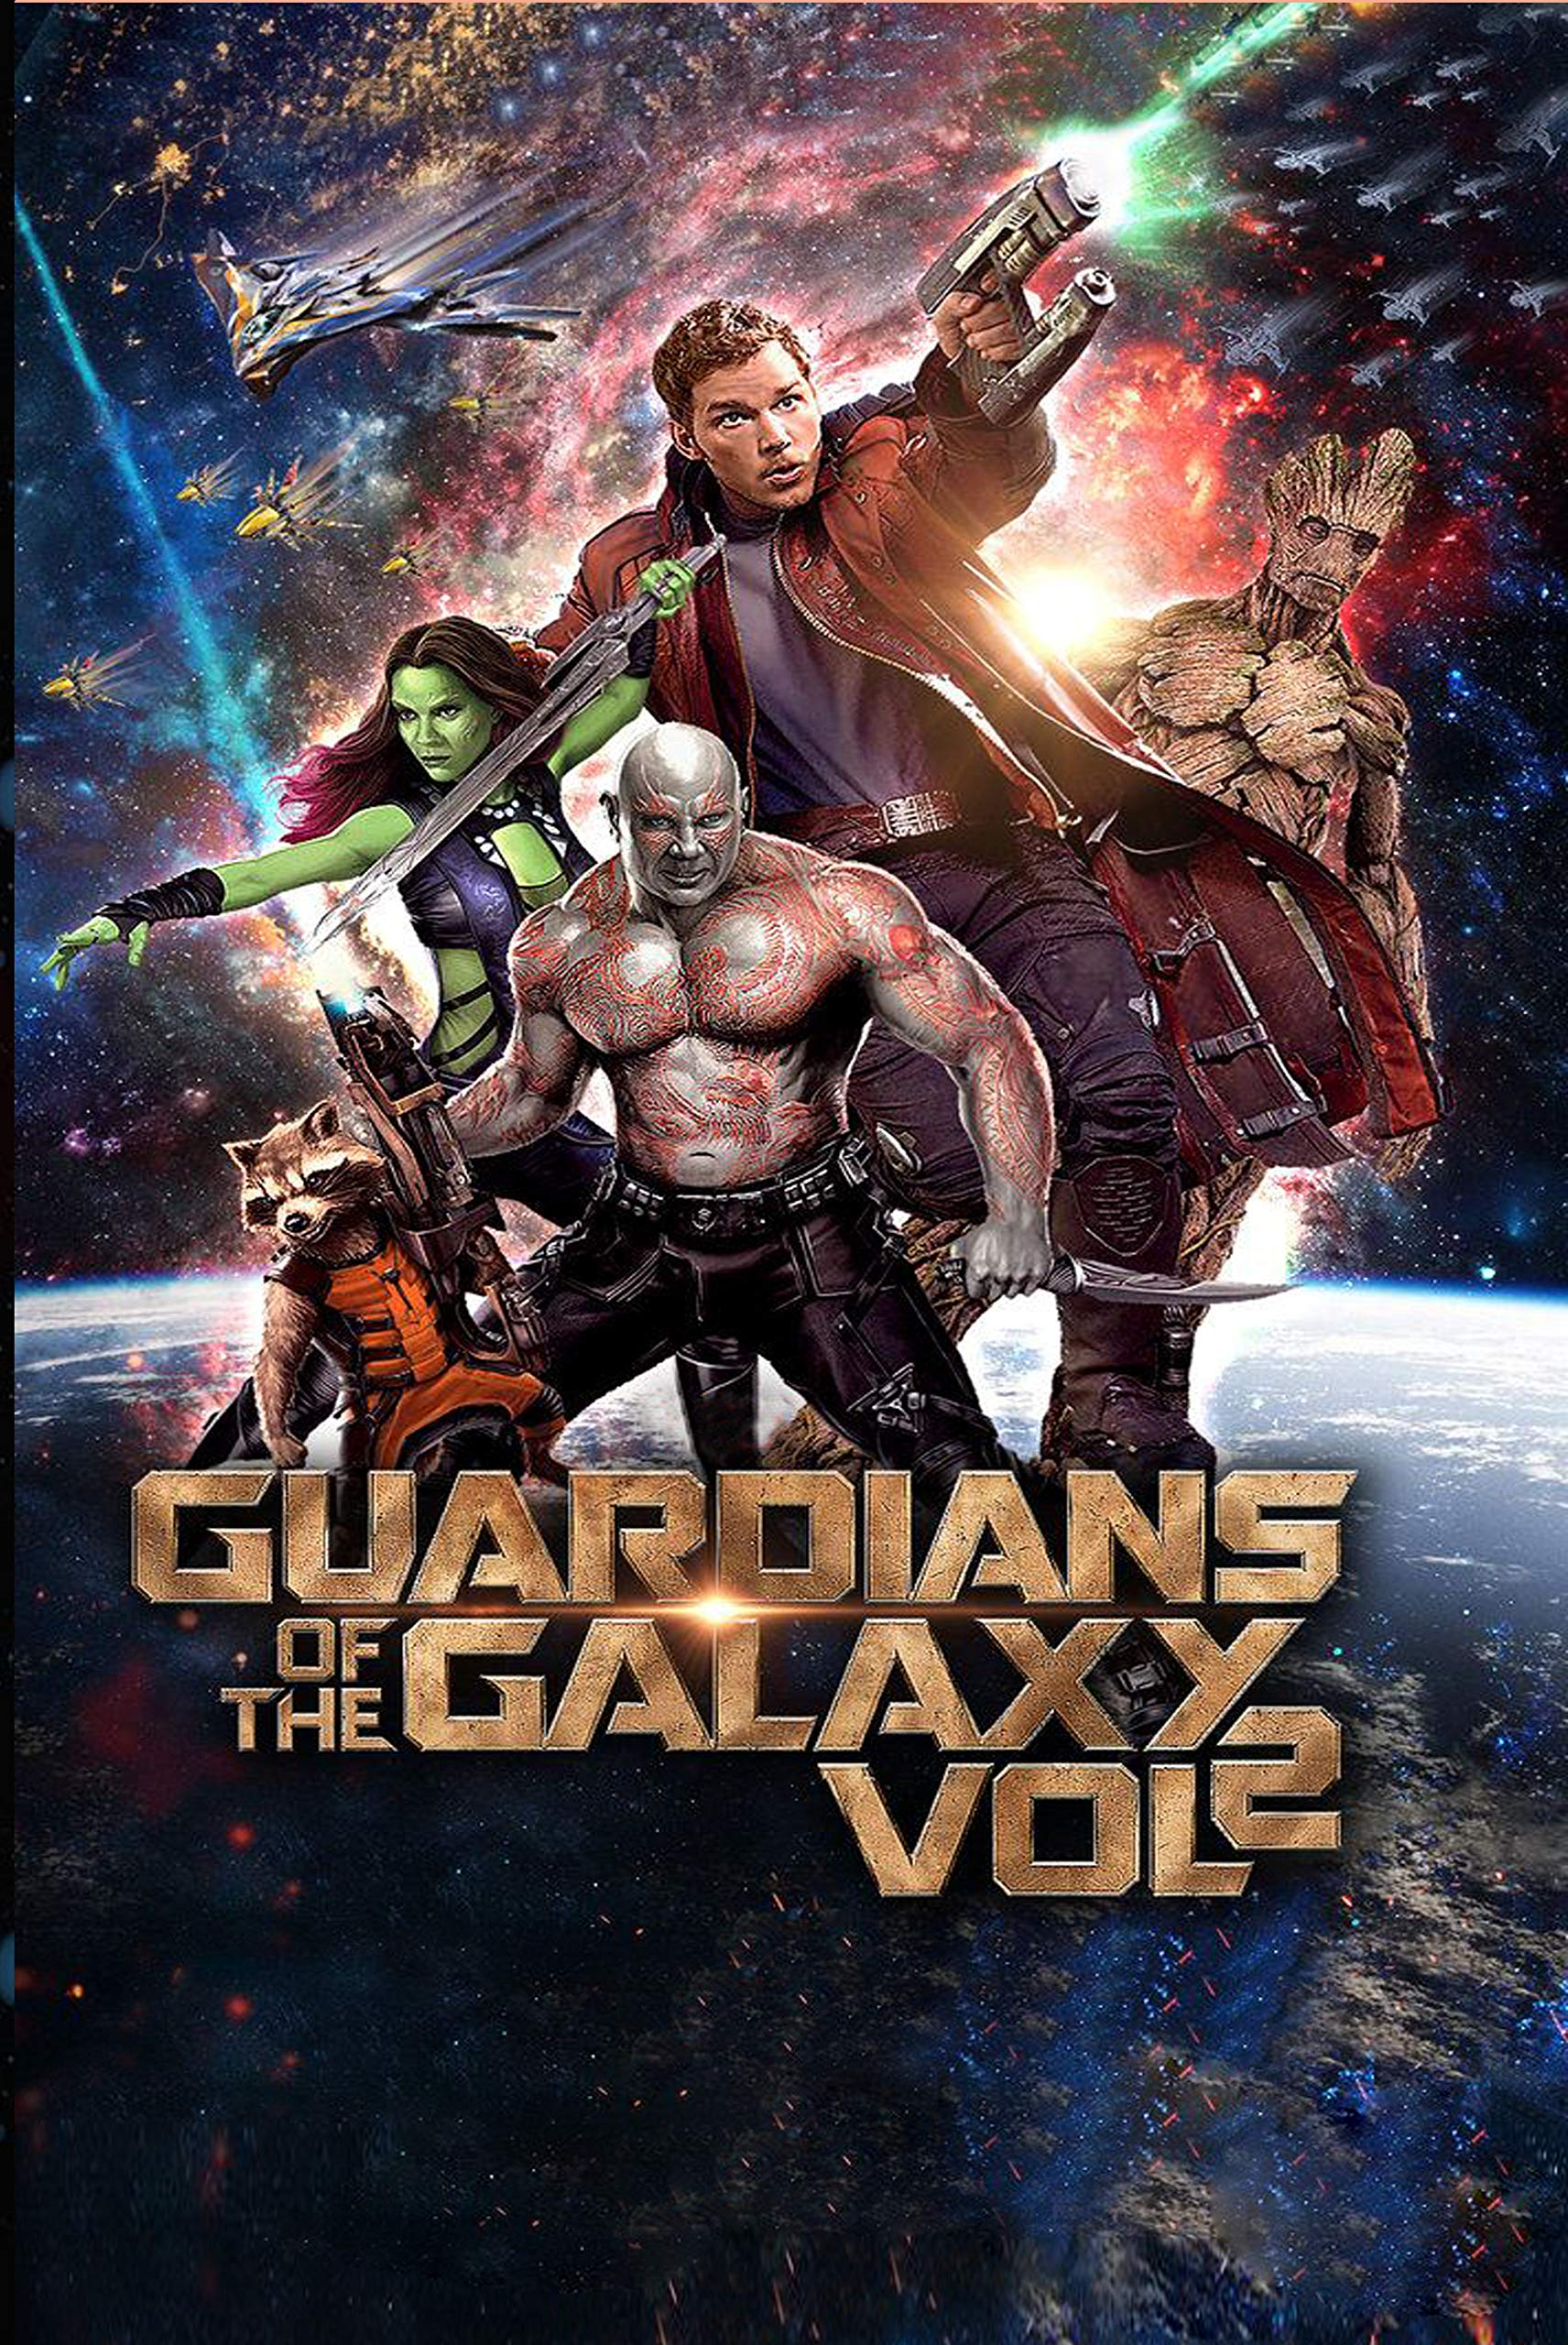 Guardians of the Galaxy Vol. 2: The Complete Screenplays